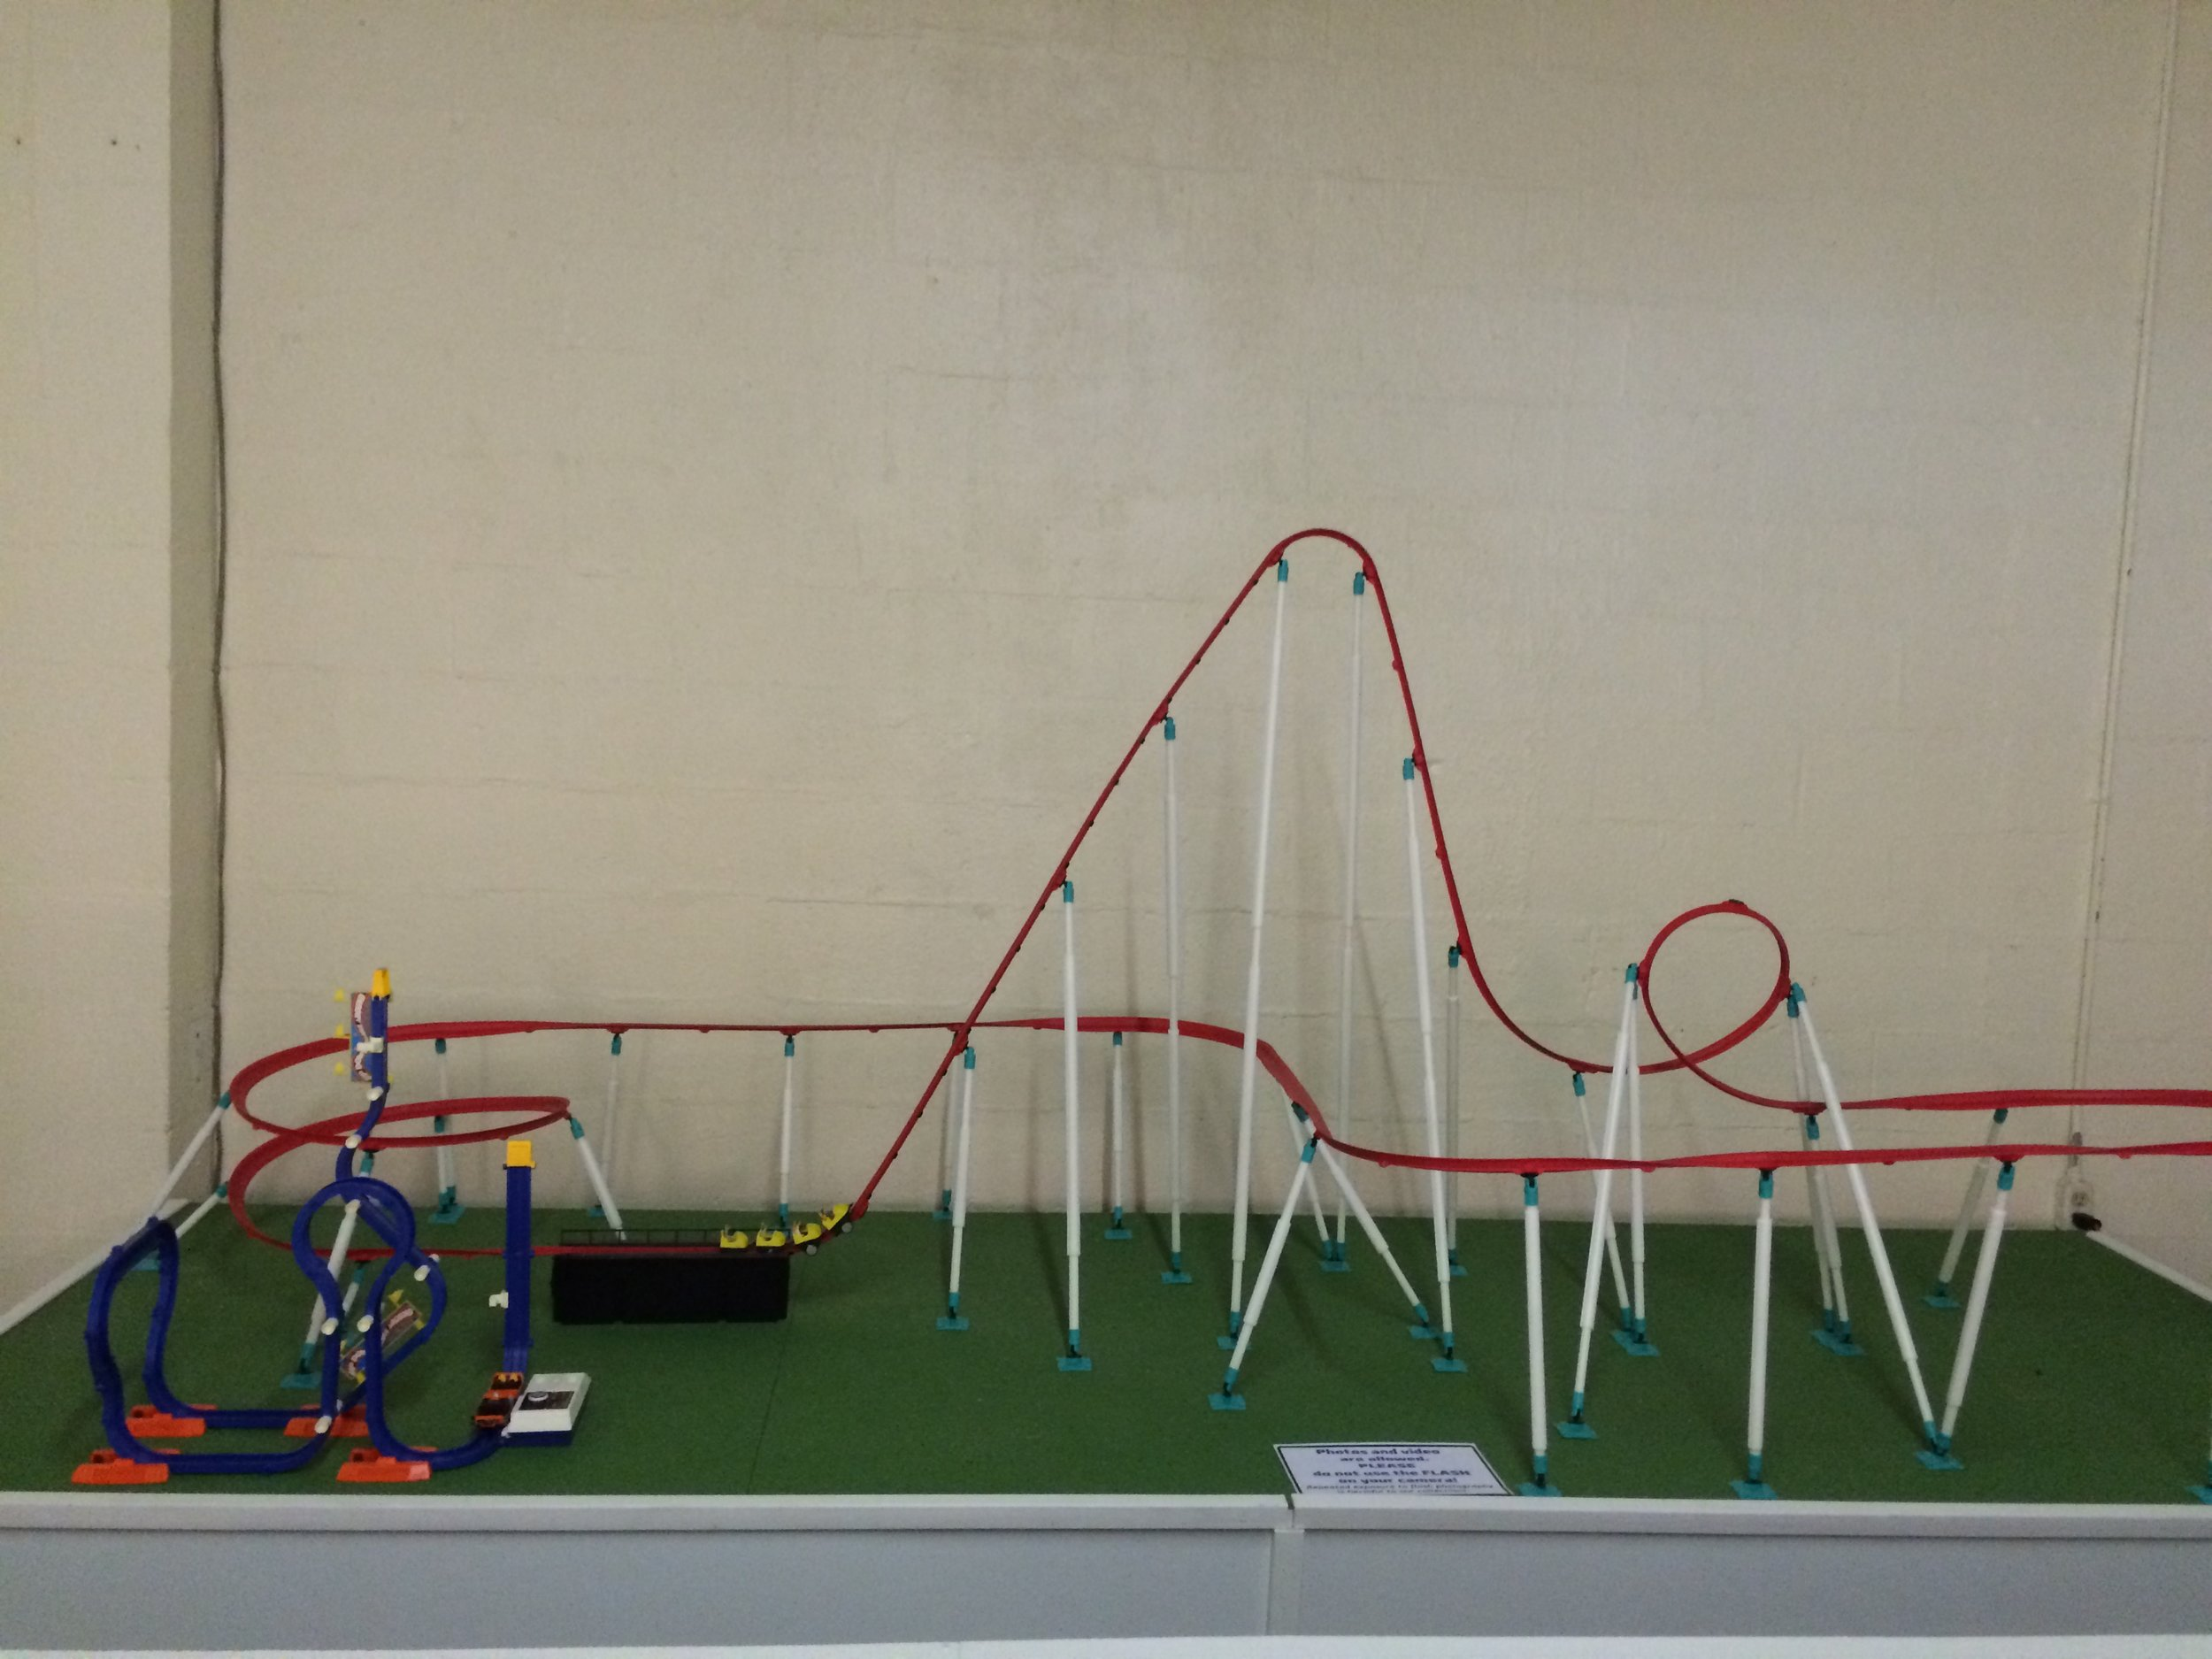 Exhibit: Playtime: Roller Coaster Toy Gallery - Roller Coaster Tycoon Construction Set c. 2003